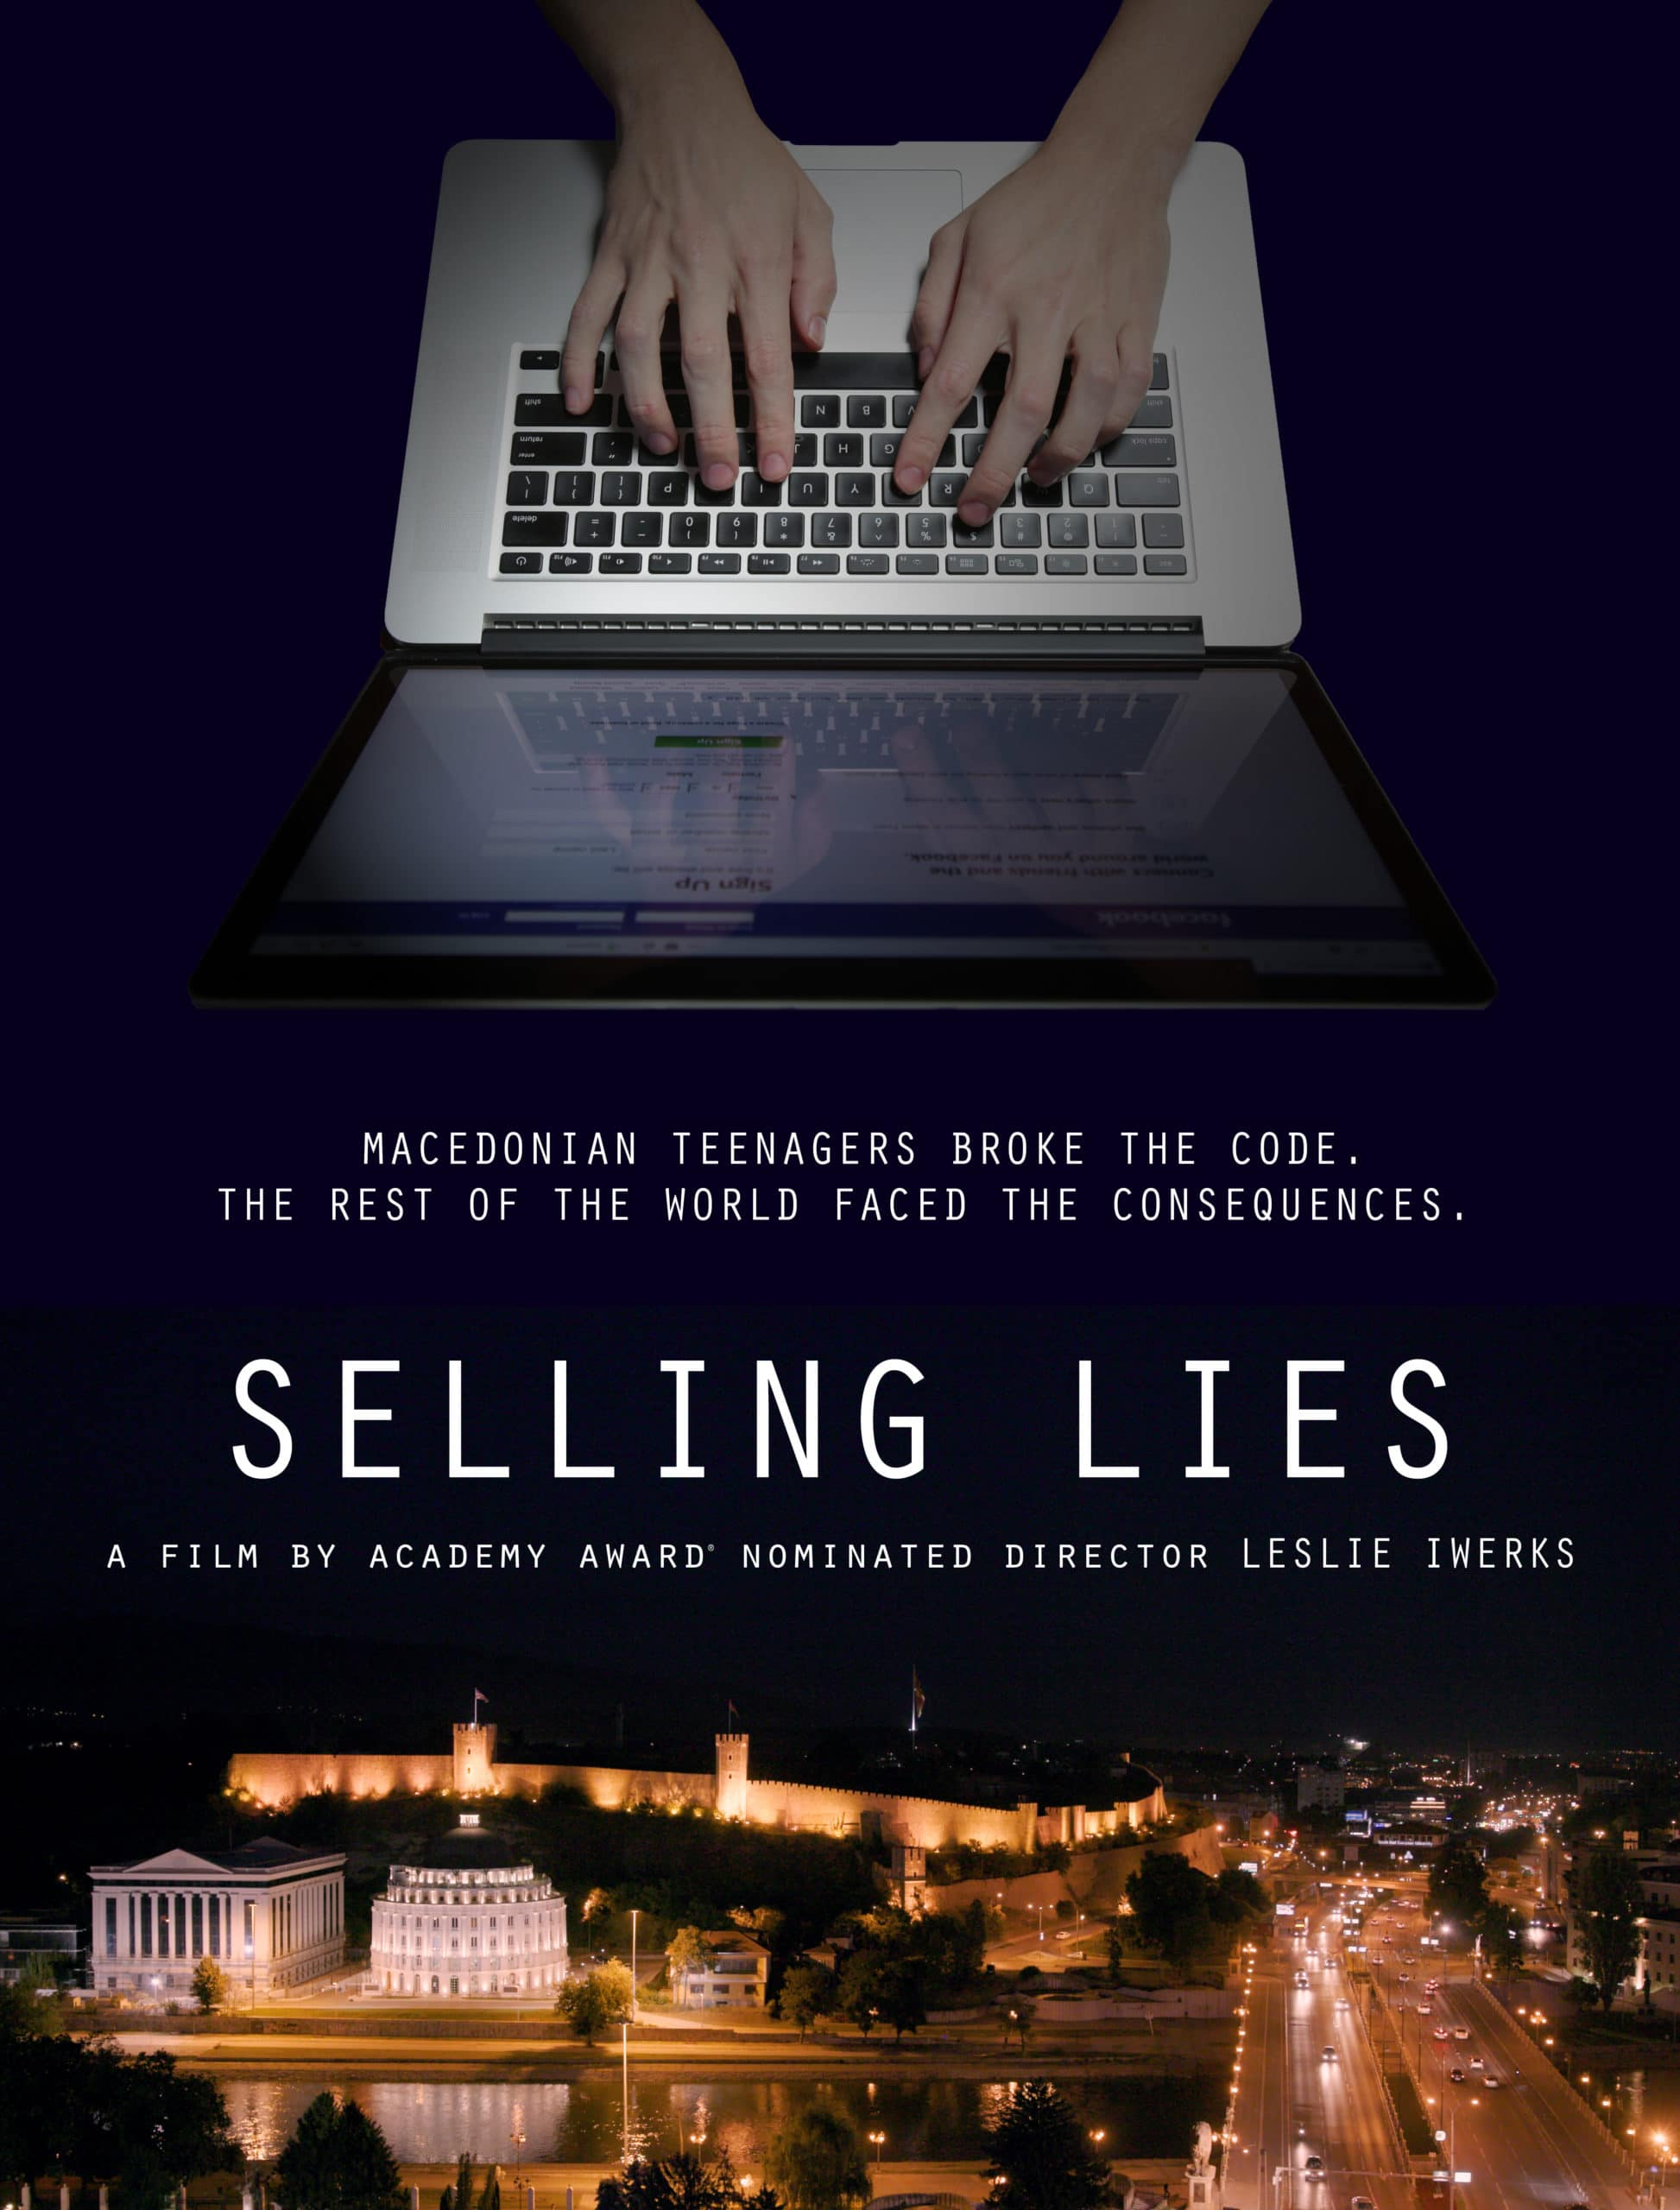 selling lies movie poster